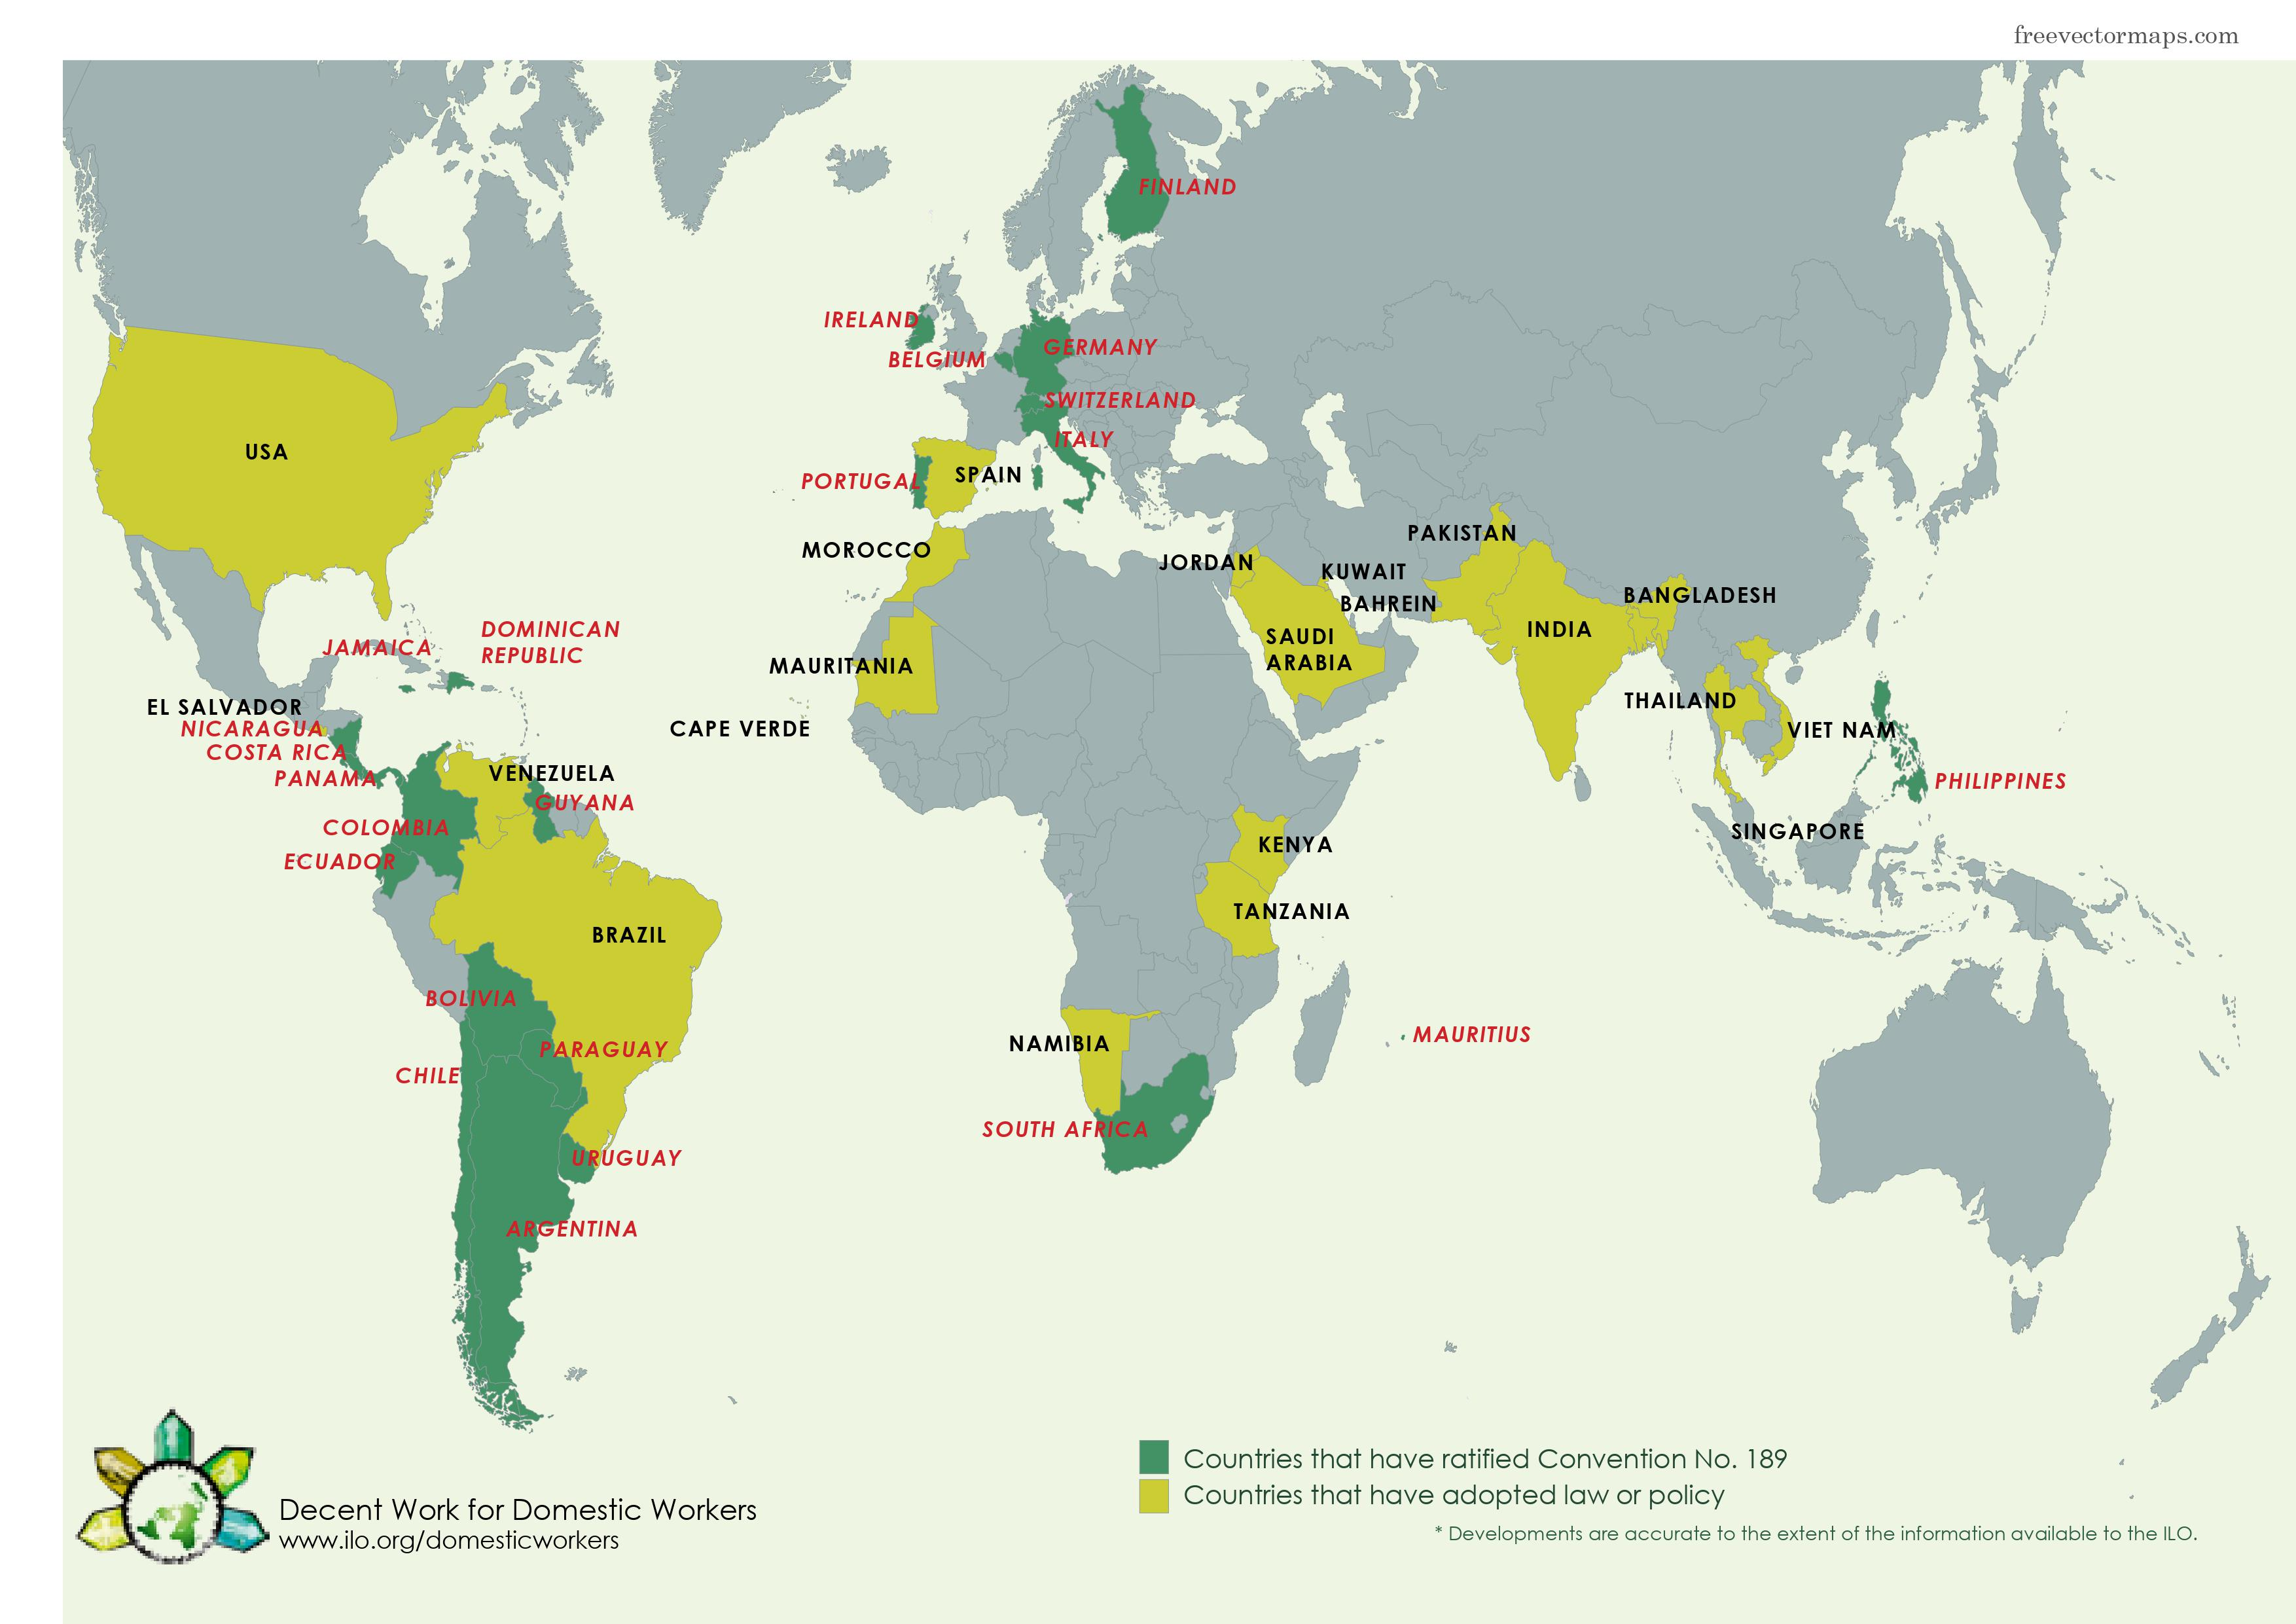 A map of the countries who have ratified ILO convention 189 and those who have turned it into policy